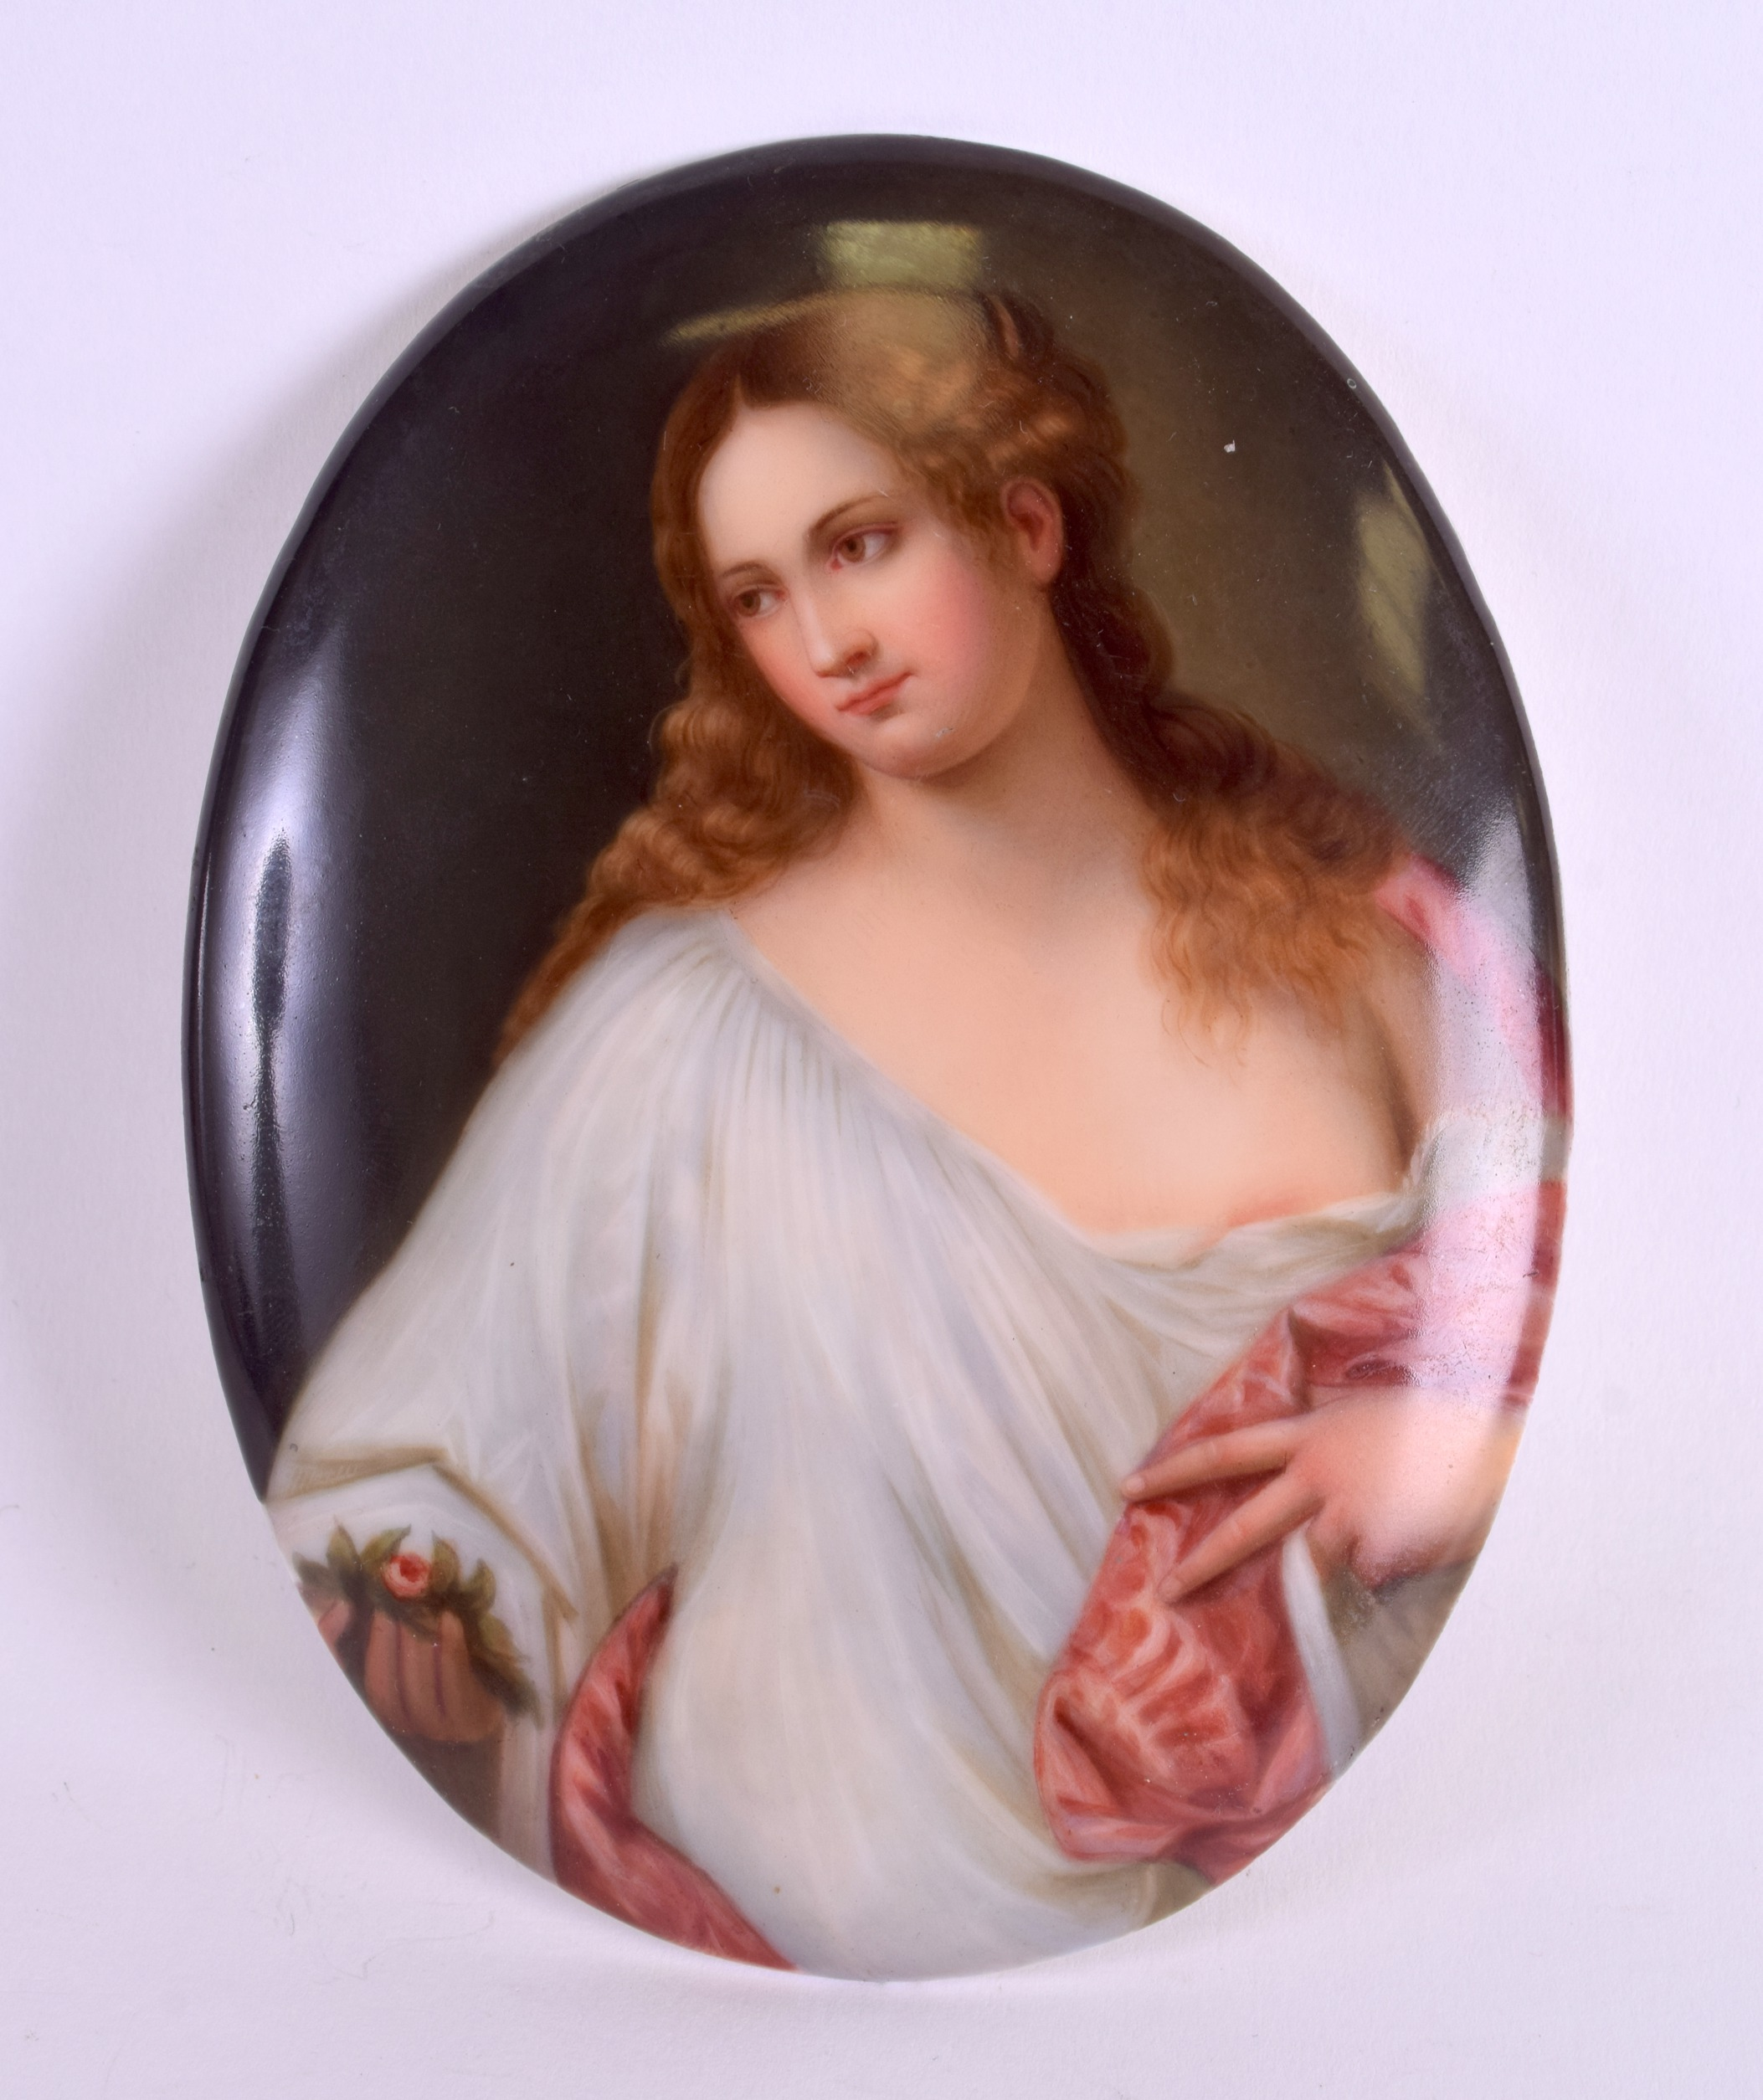 Lot 70 - A LATE 19TH CENTURY GERMAN PORCELAIN PLAQUE painted with a female wearing a white and red robe. 11